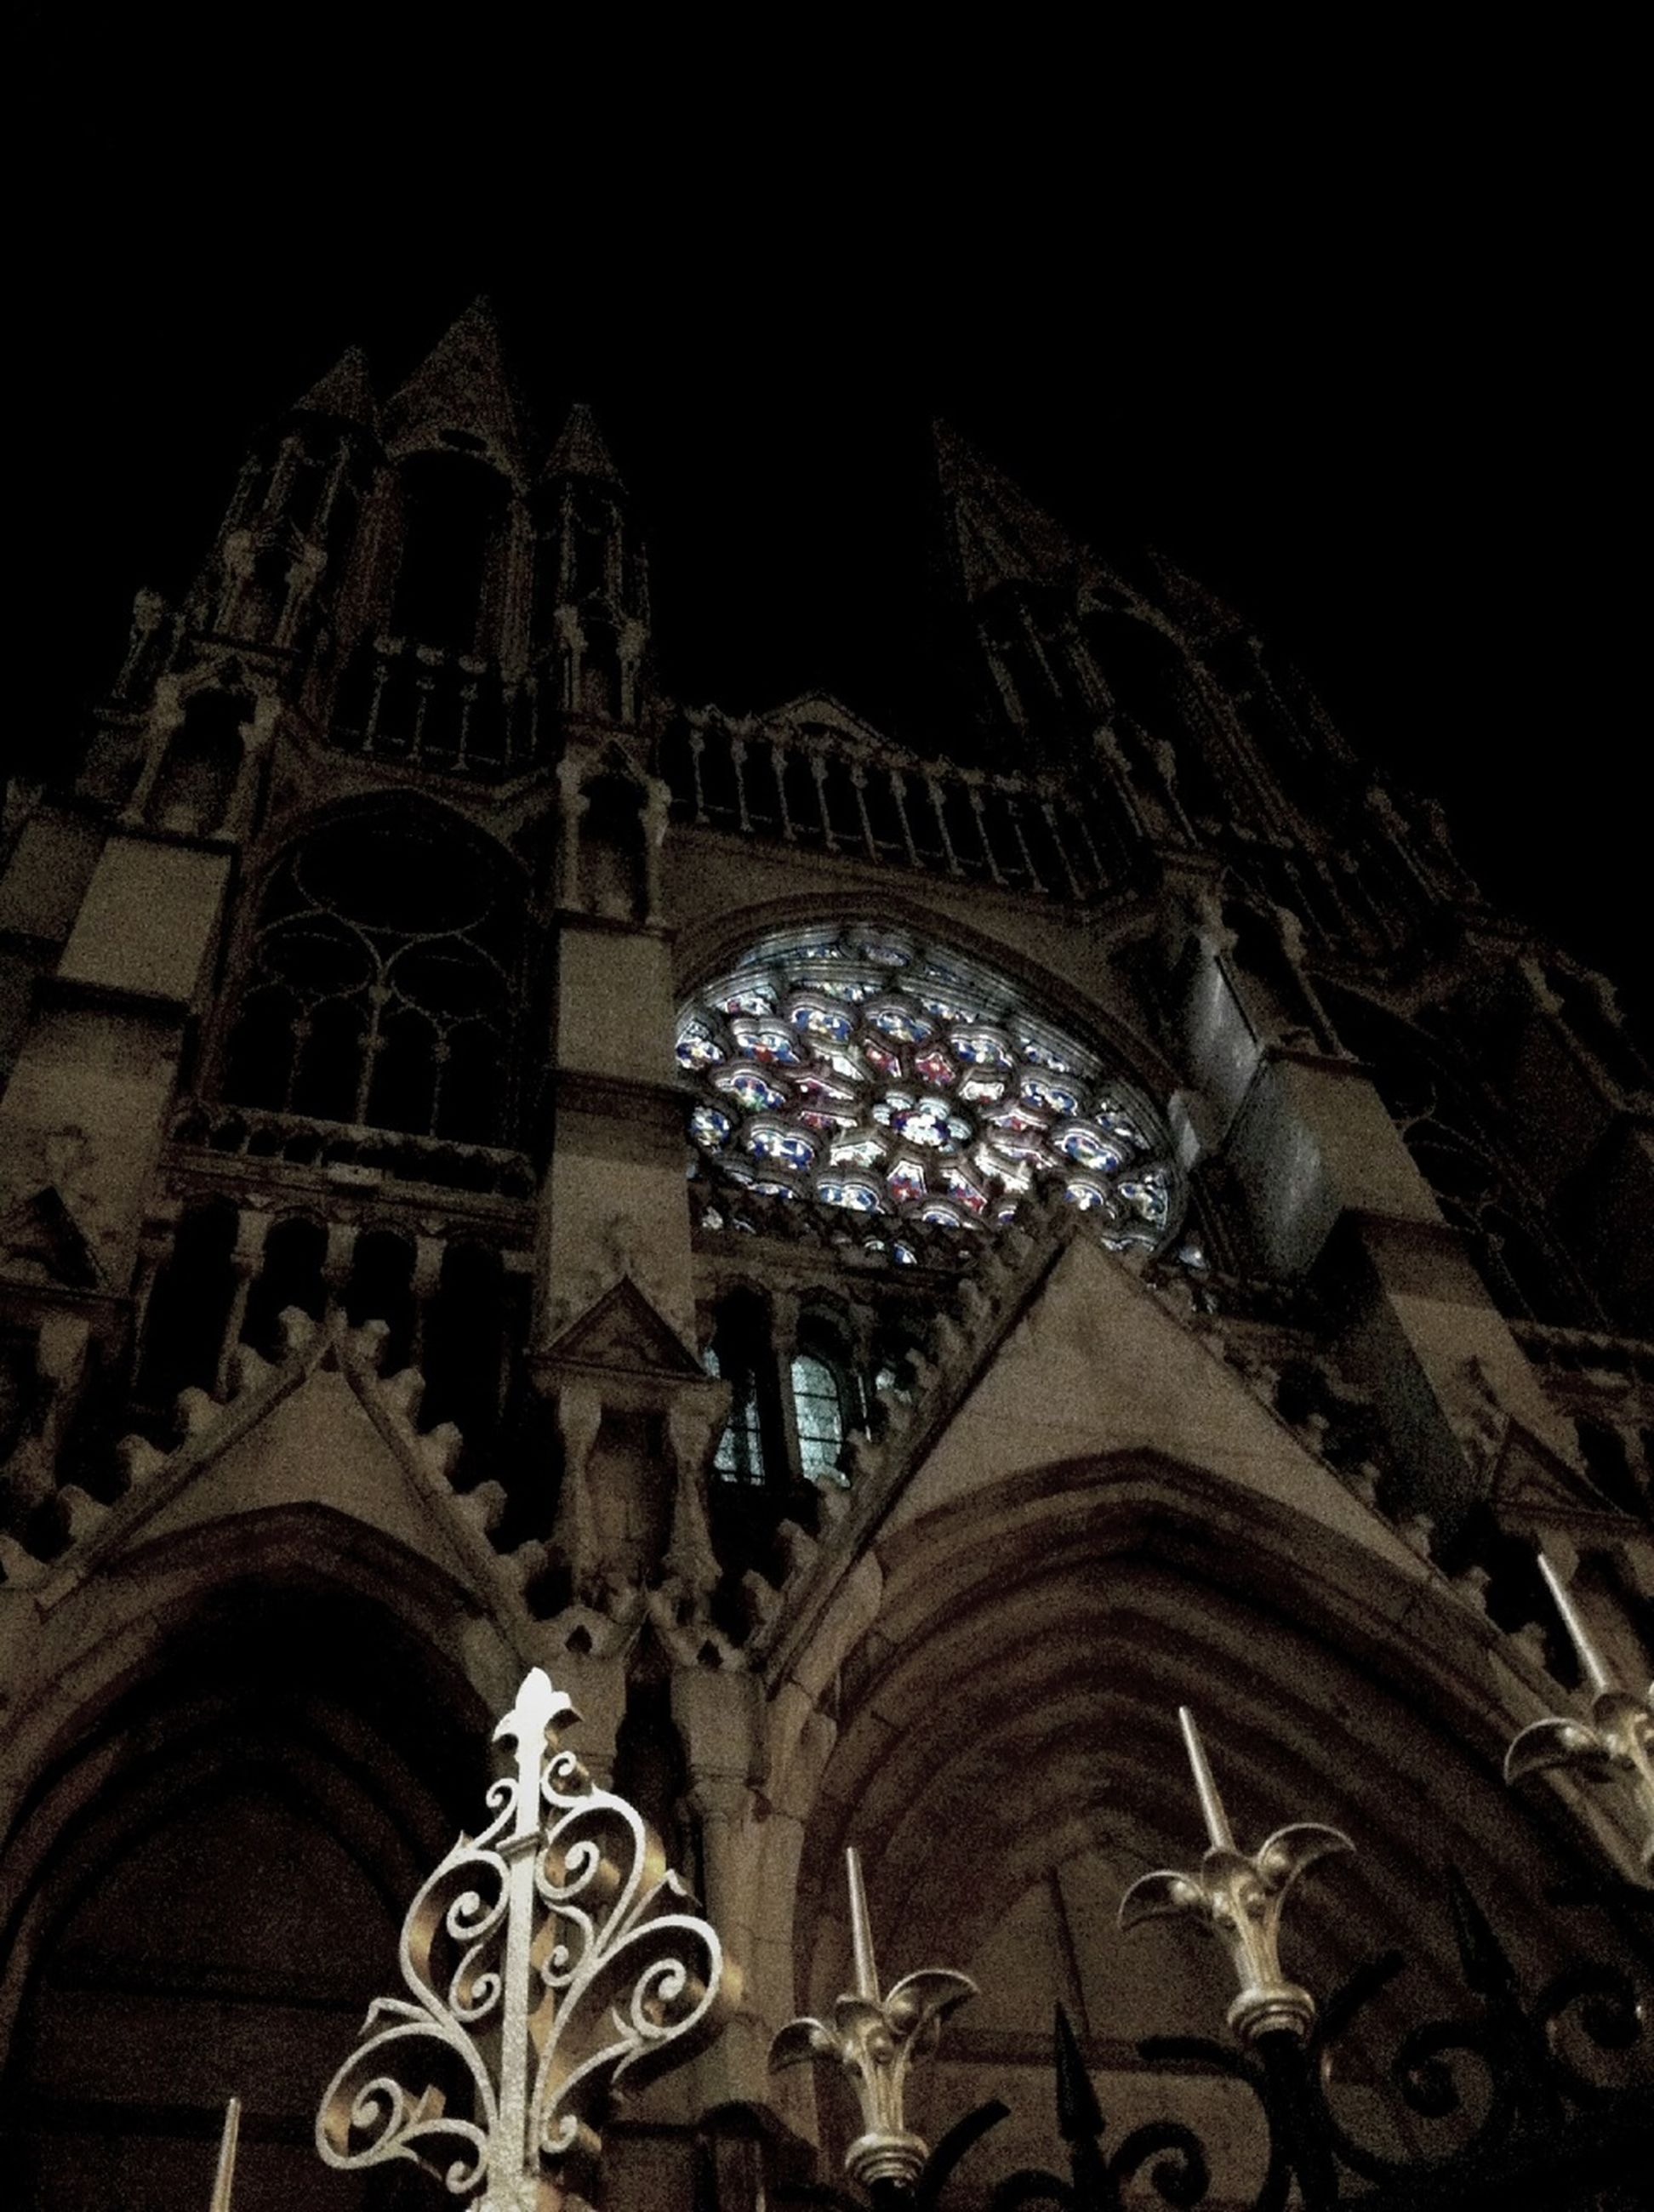 architecture, built structure, religion, place of worship, famous place, building exterior, spirituality, travel destinations, low angle view, history, arch, tourism, church, night, international landmark, travel, cathedral, clear sky